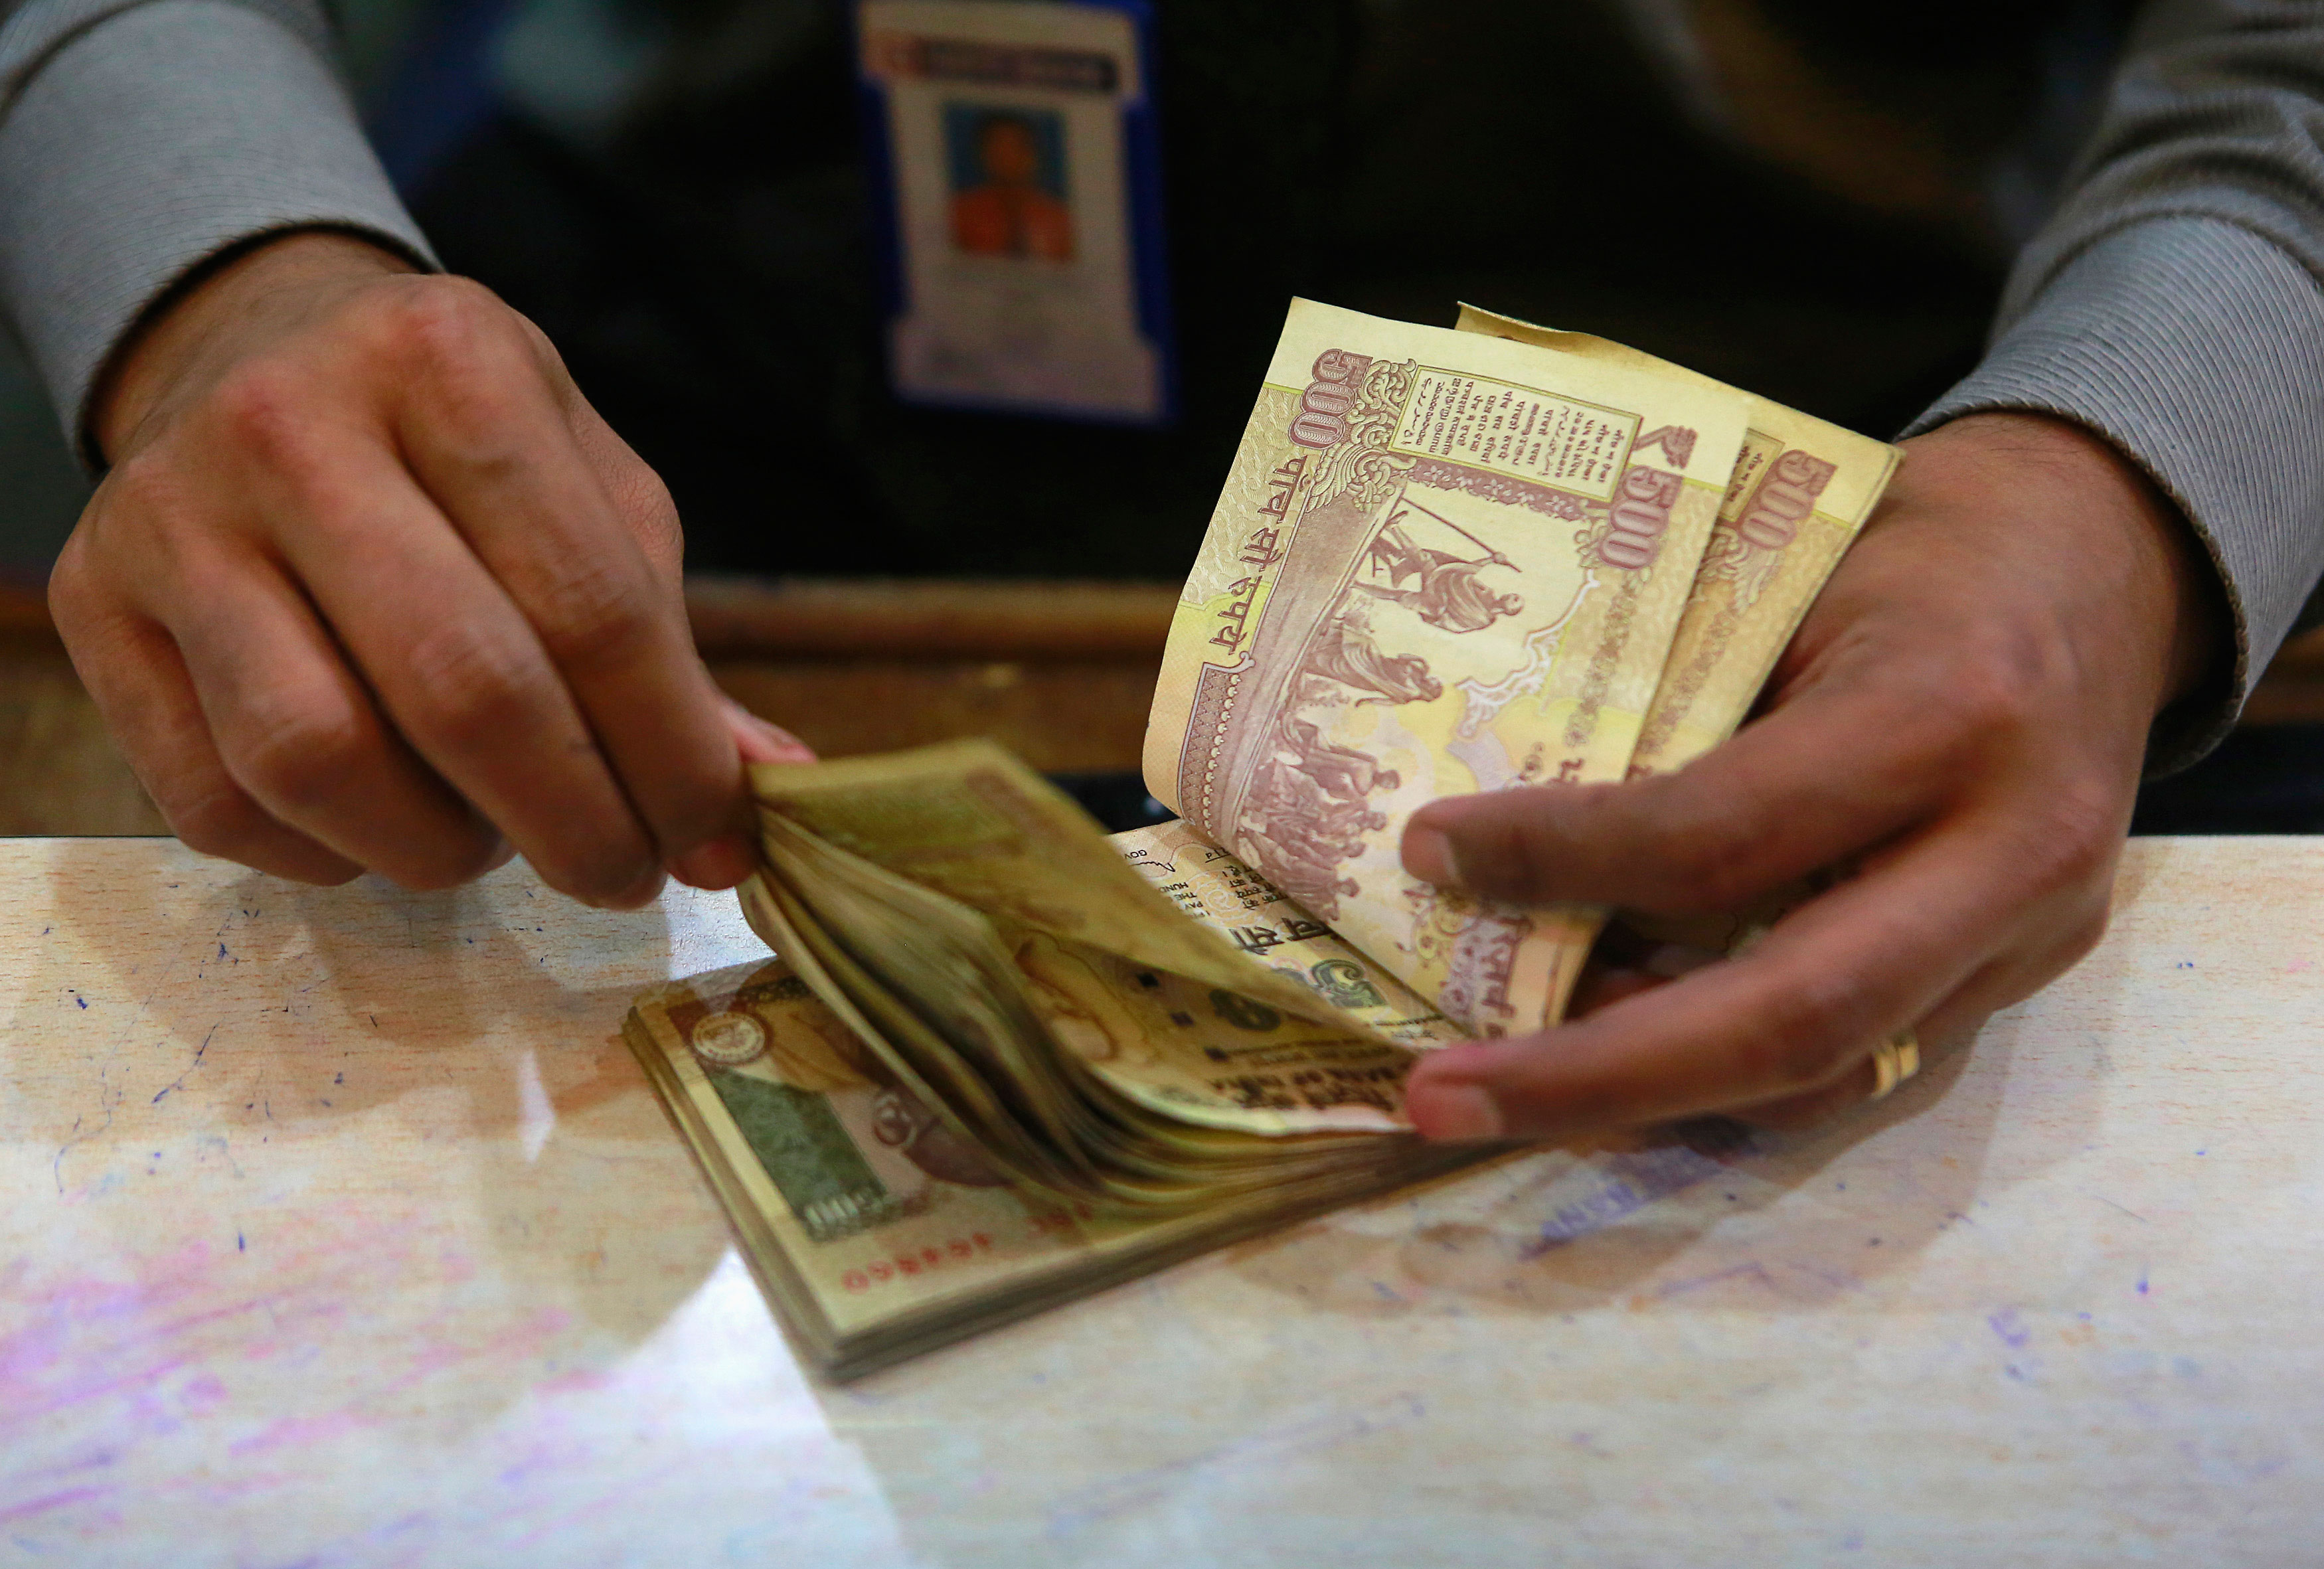 What has suddenly changed for the Indian economy?